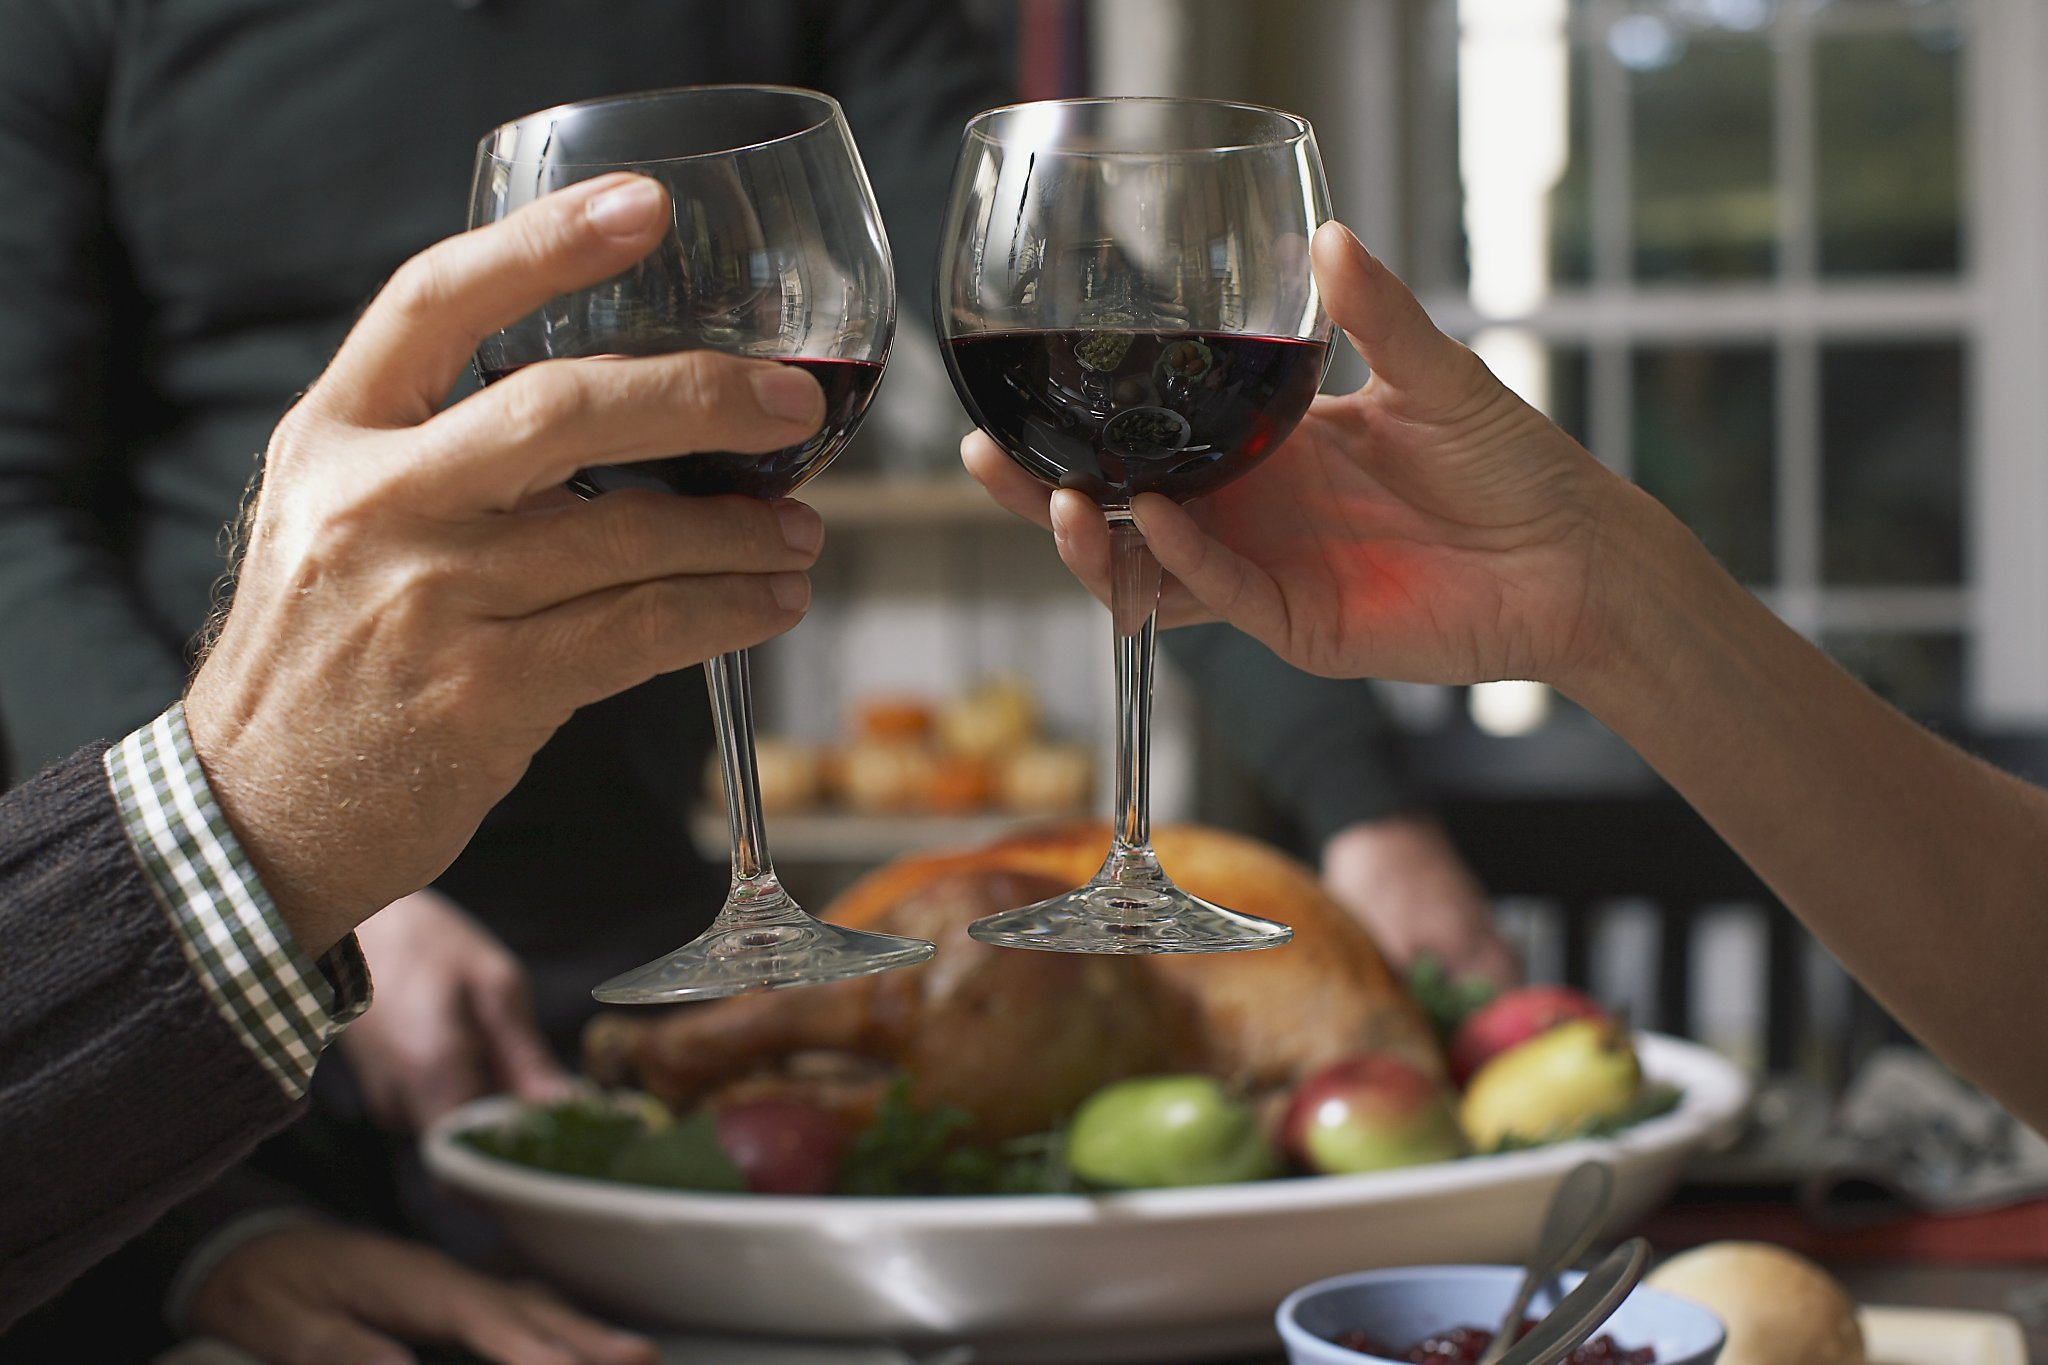 sfchronicle.com - Esther Mobley - Answering all your Thanksgiving wine questions